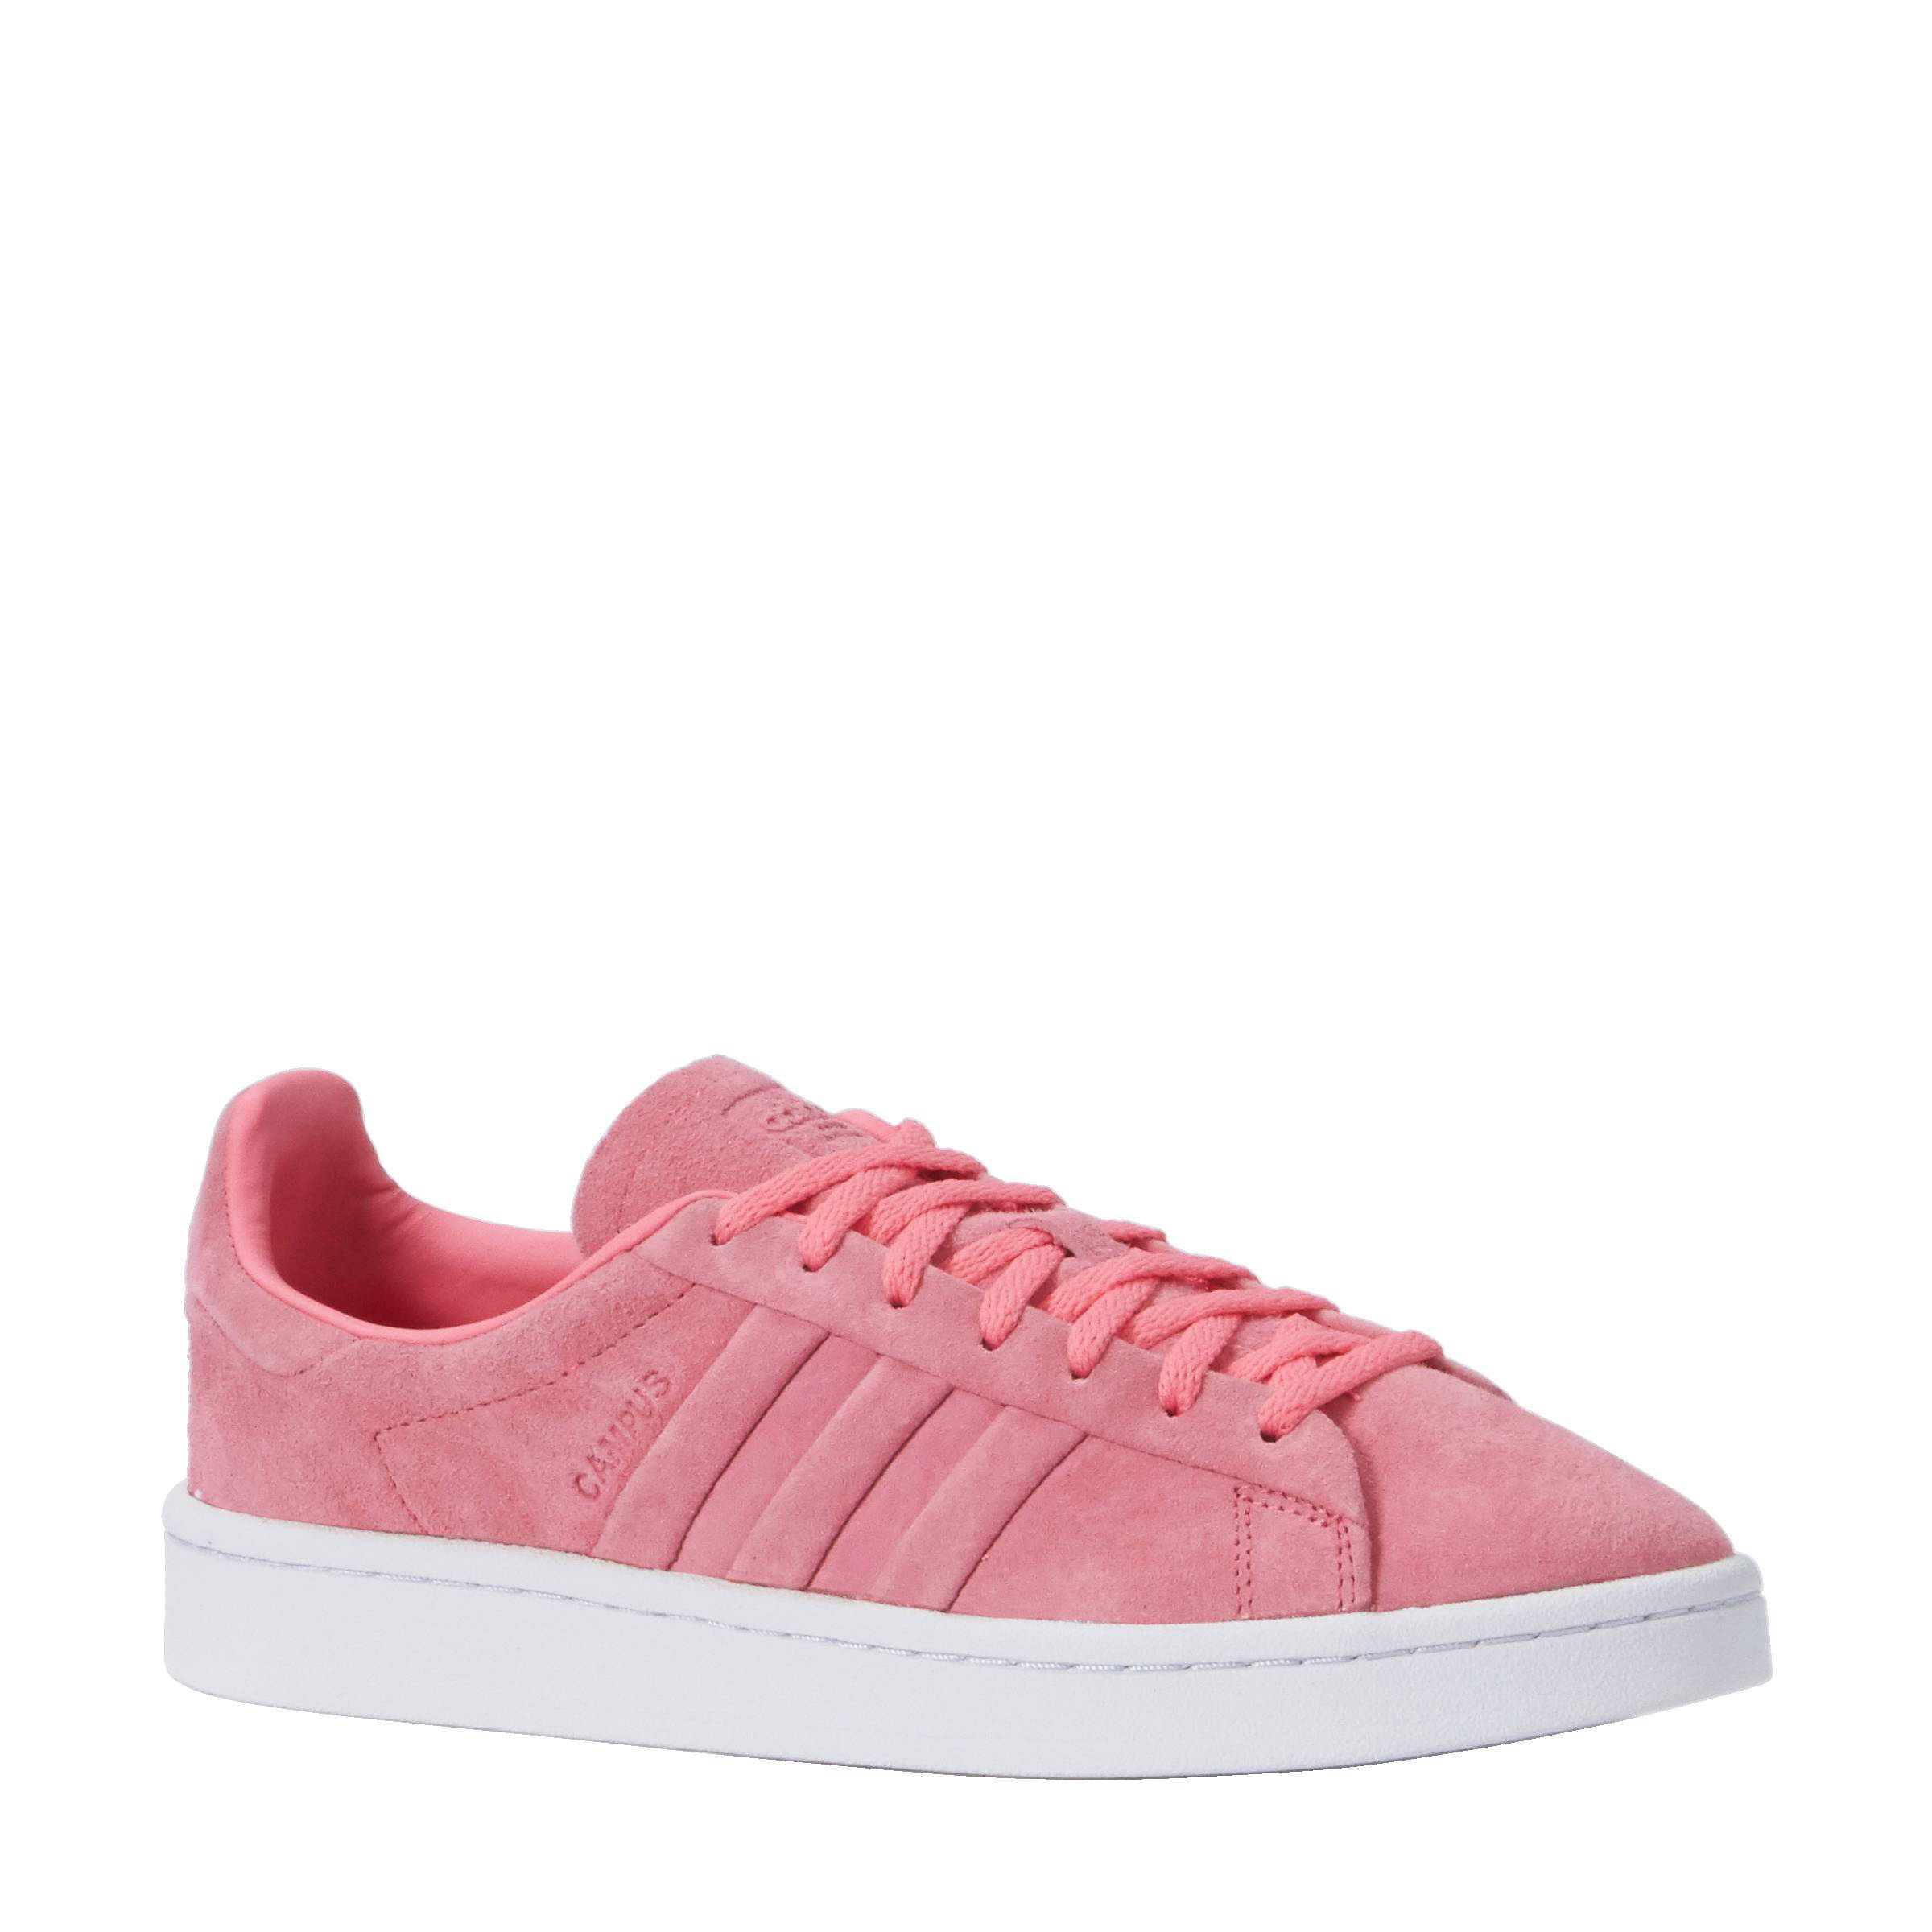 adidas originals adidas Originals Campus Stitch and Turn W